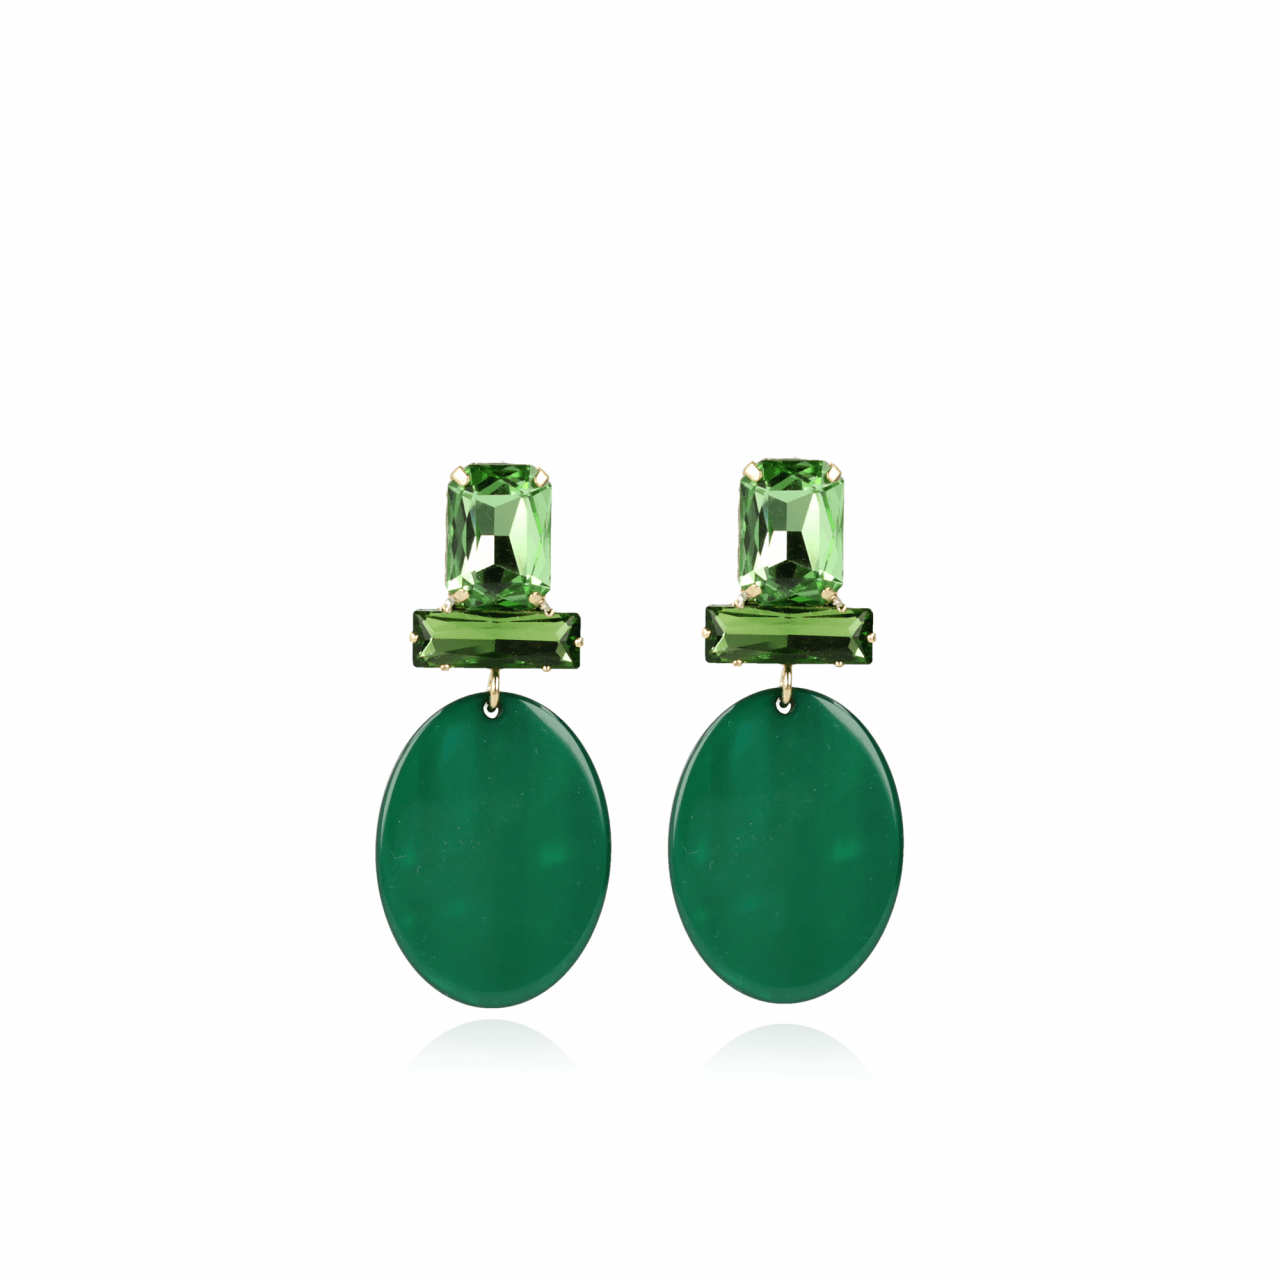 Isabelle resin closed oval S moss green earrings